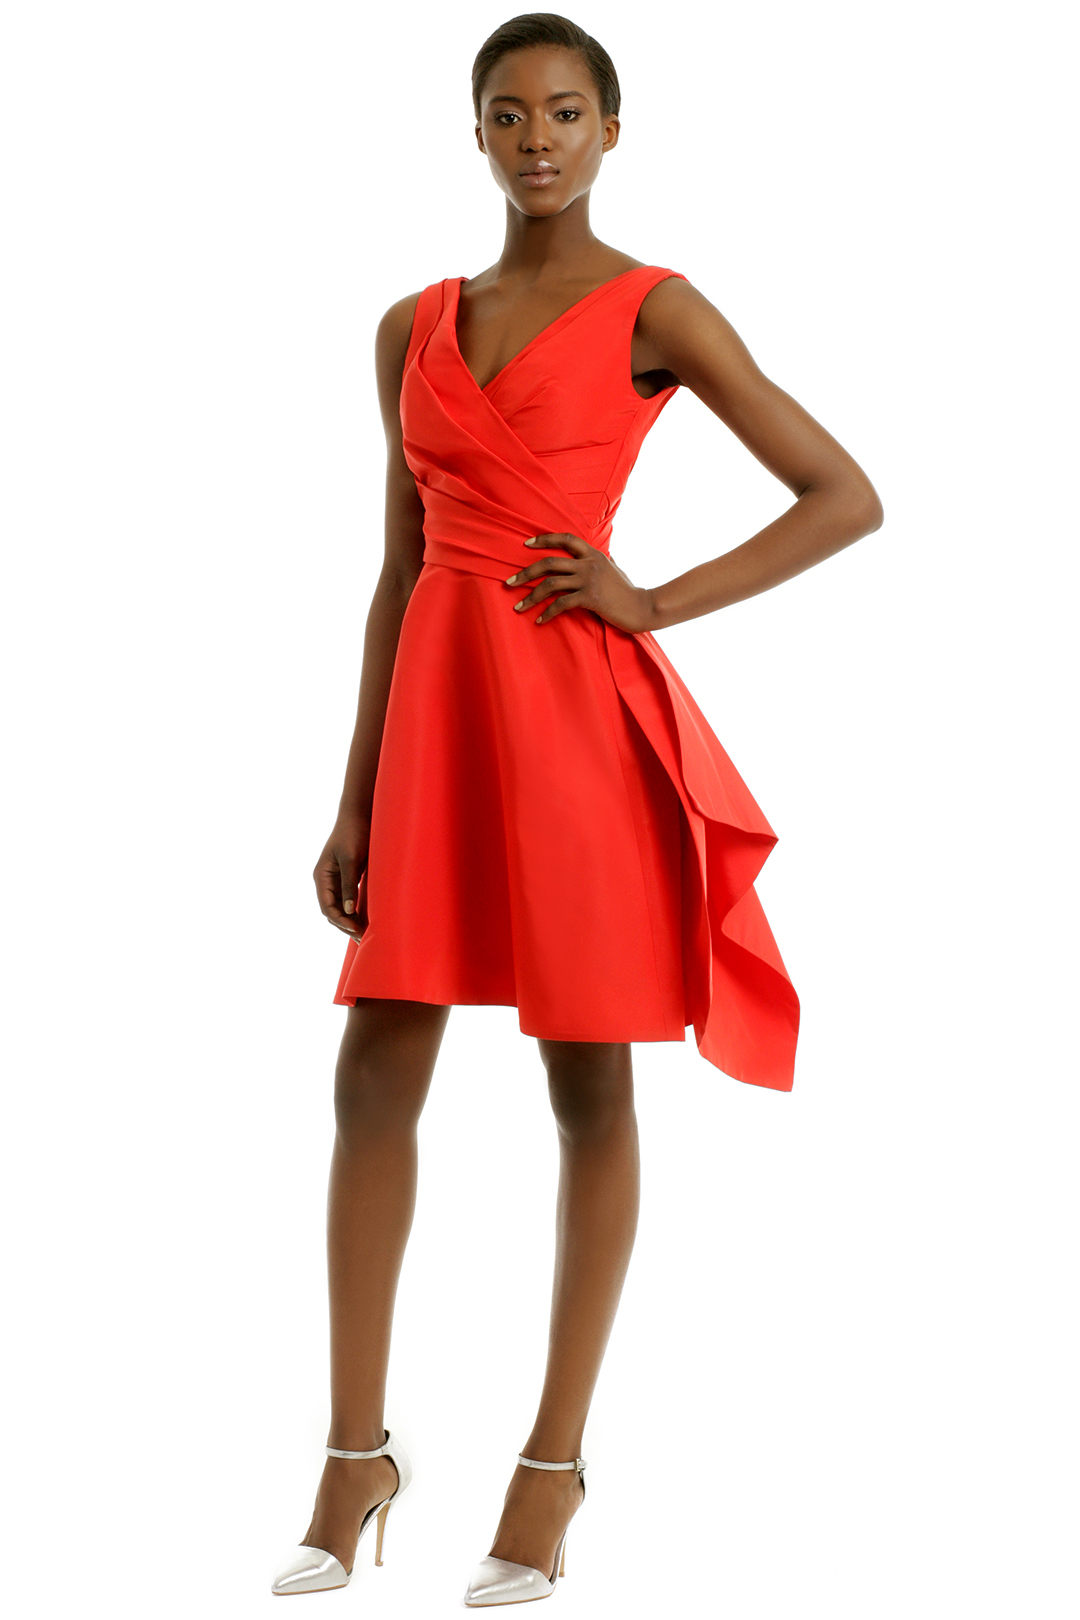 Monique Lhuillier Spin in the Skirt Dress